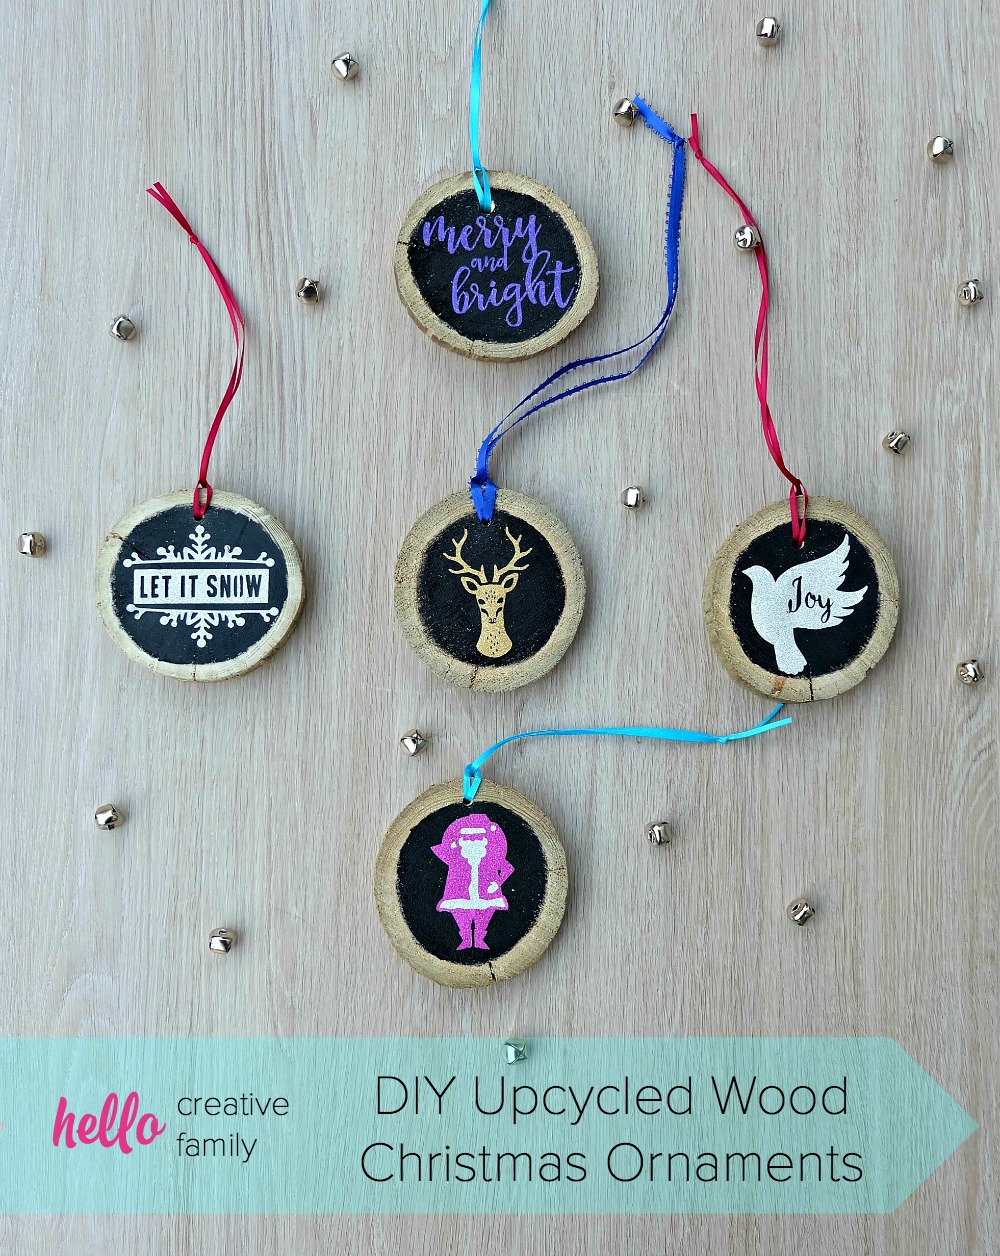 DIY Upcycled Wood Christmas Ornaments - Hello Creative Family